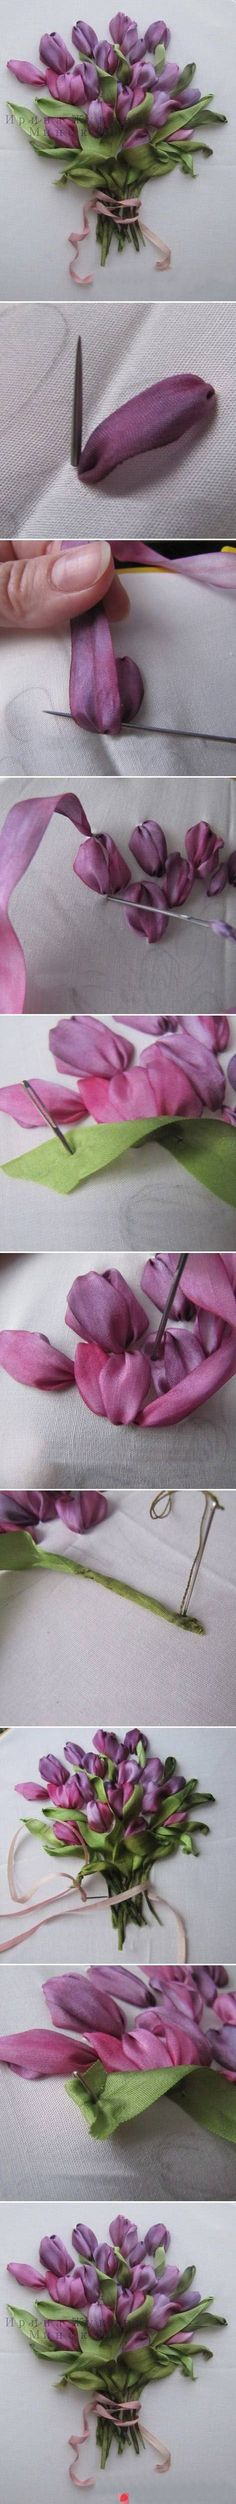 Woah! Silk ribbon embroidery tulips demonstrated - exquisite!!!! Would be esp. pretty done in over-dyed silk ribbon!